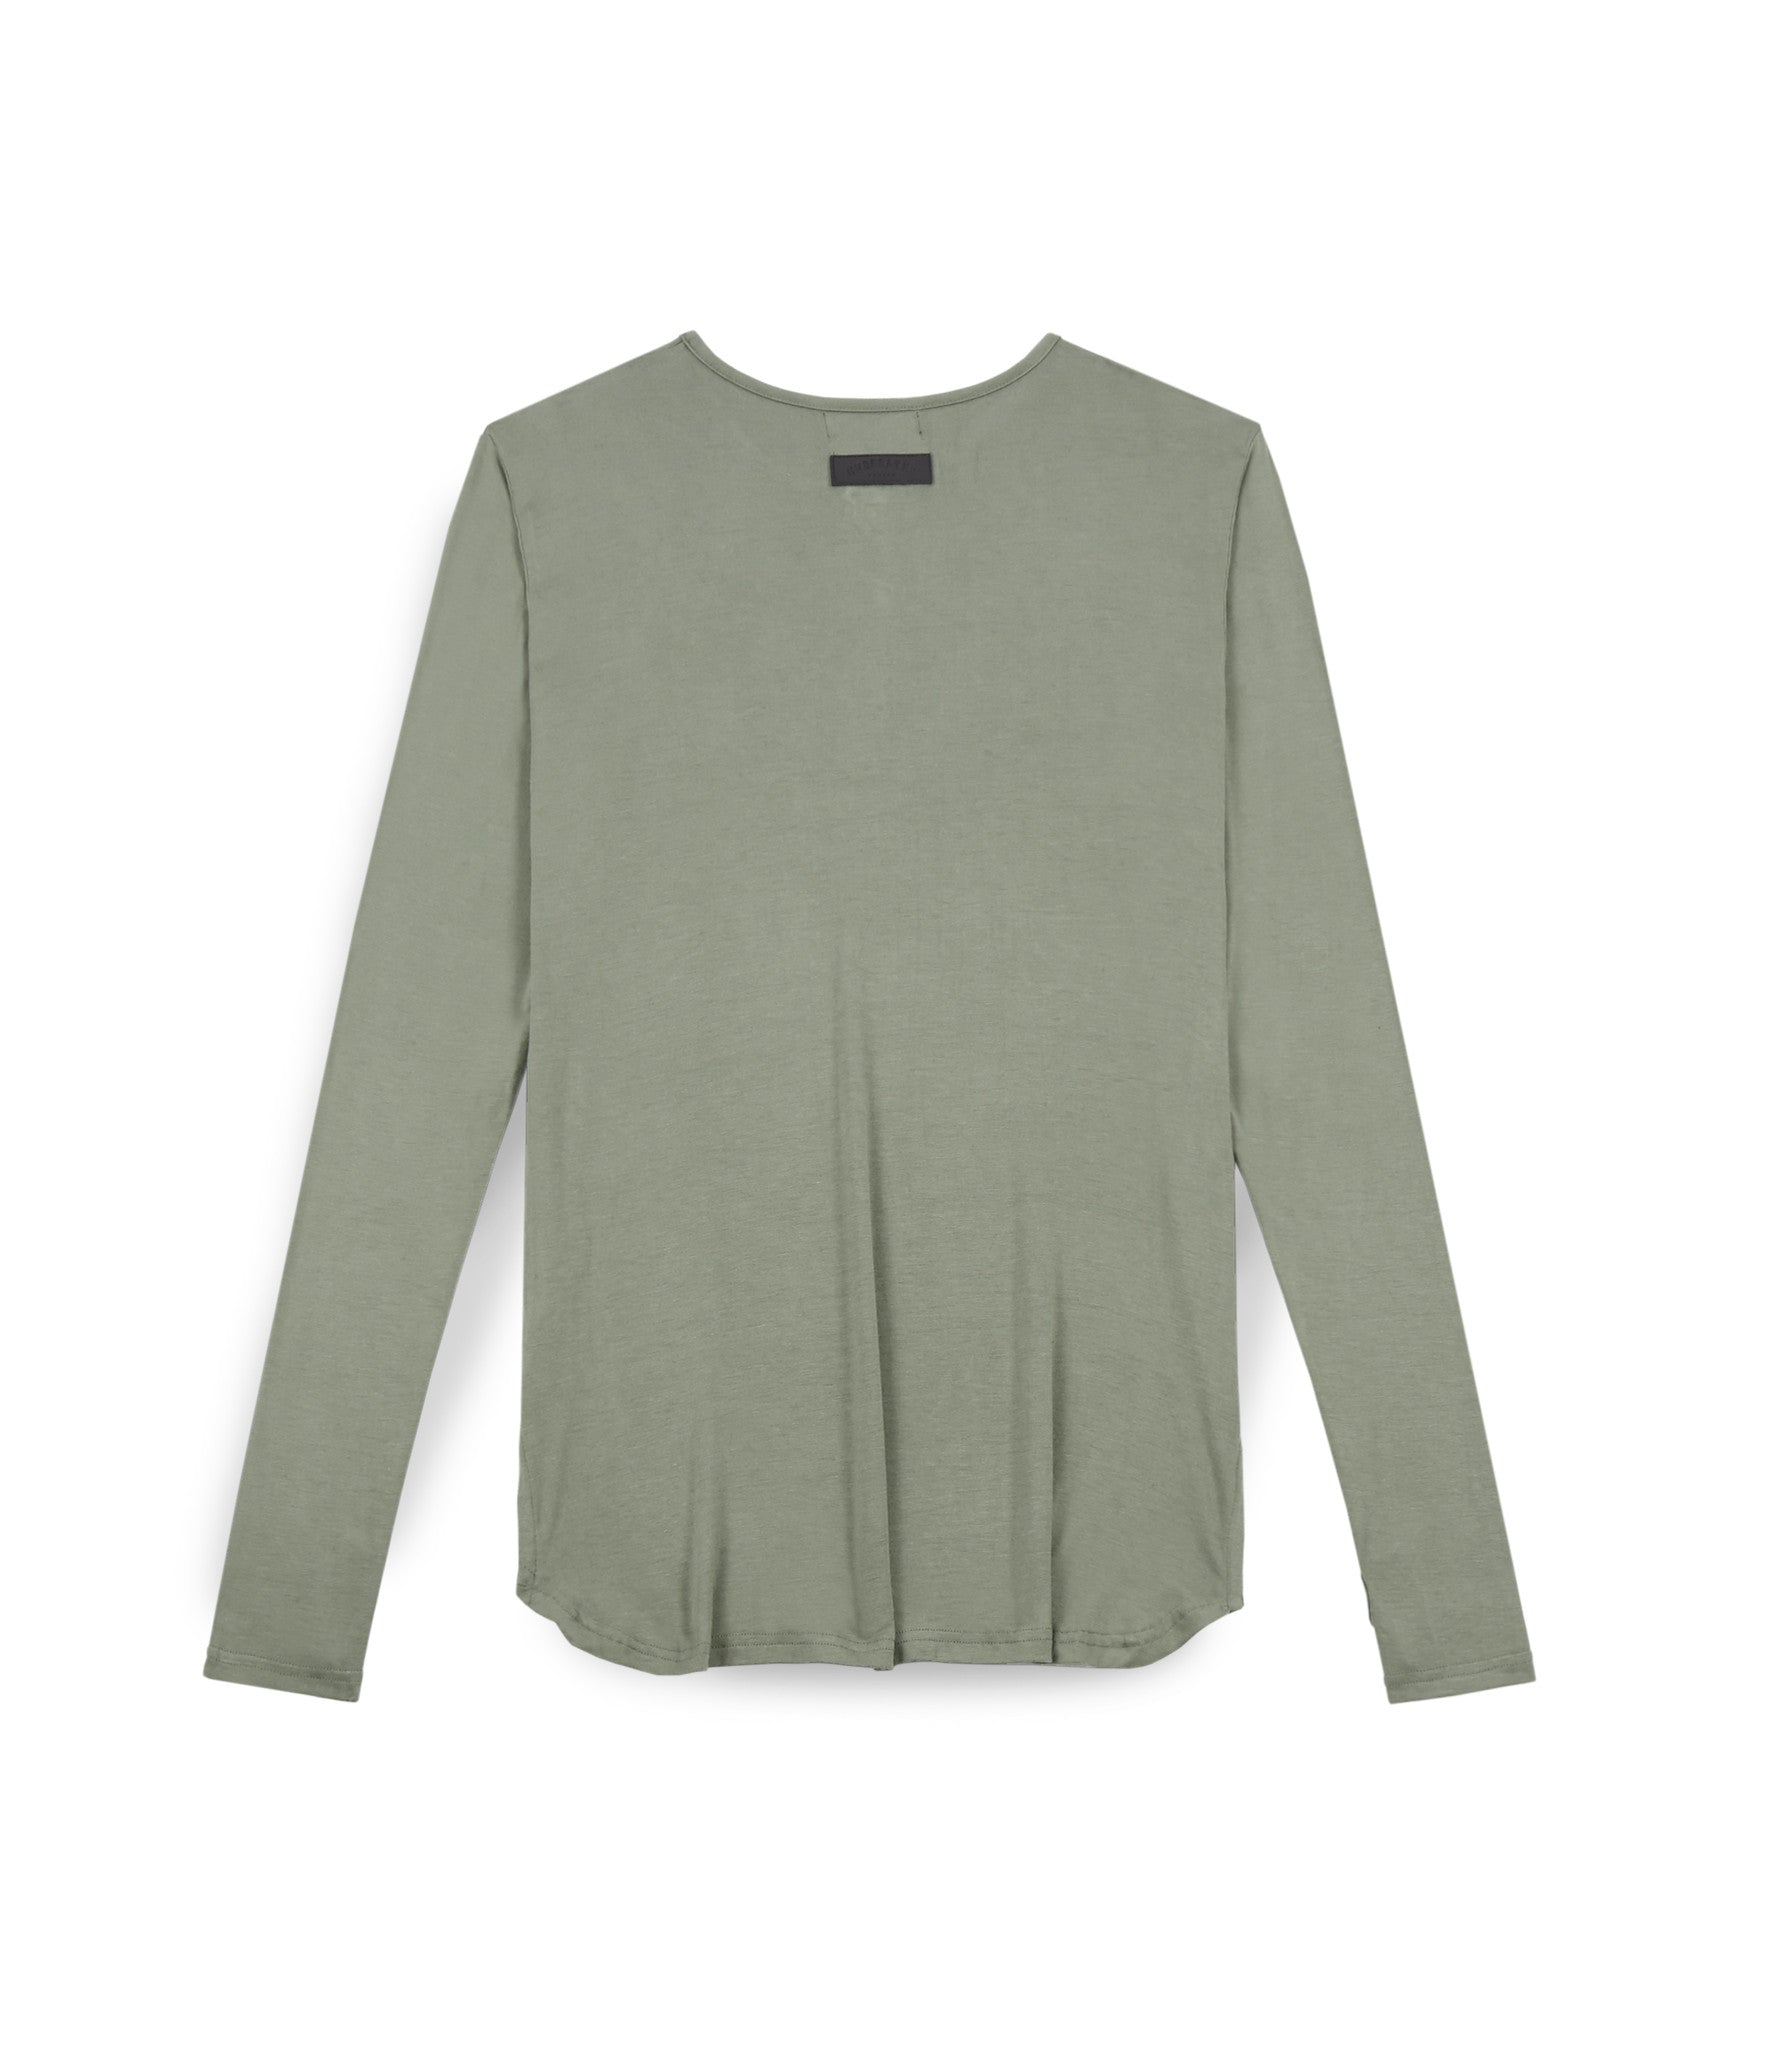 LS264 Under Layer Henley Tee - Khaki - underated london - underatedco - 2